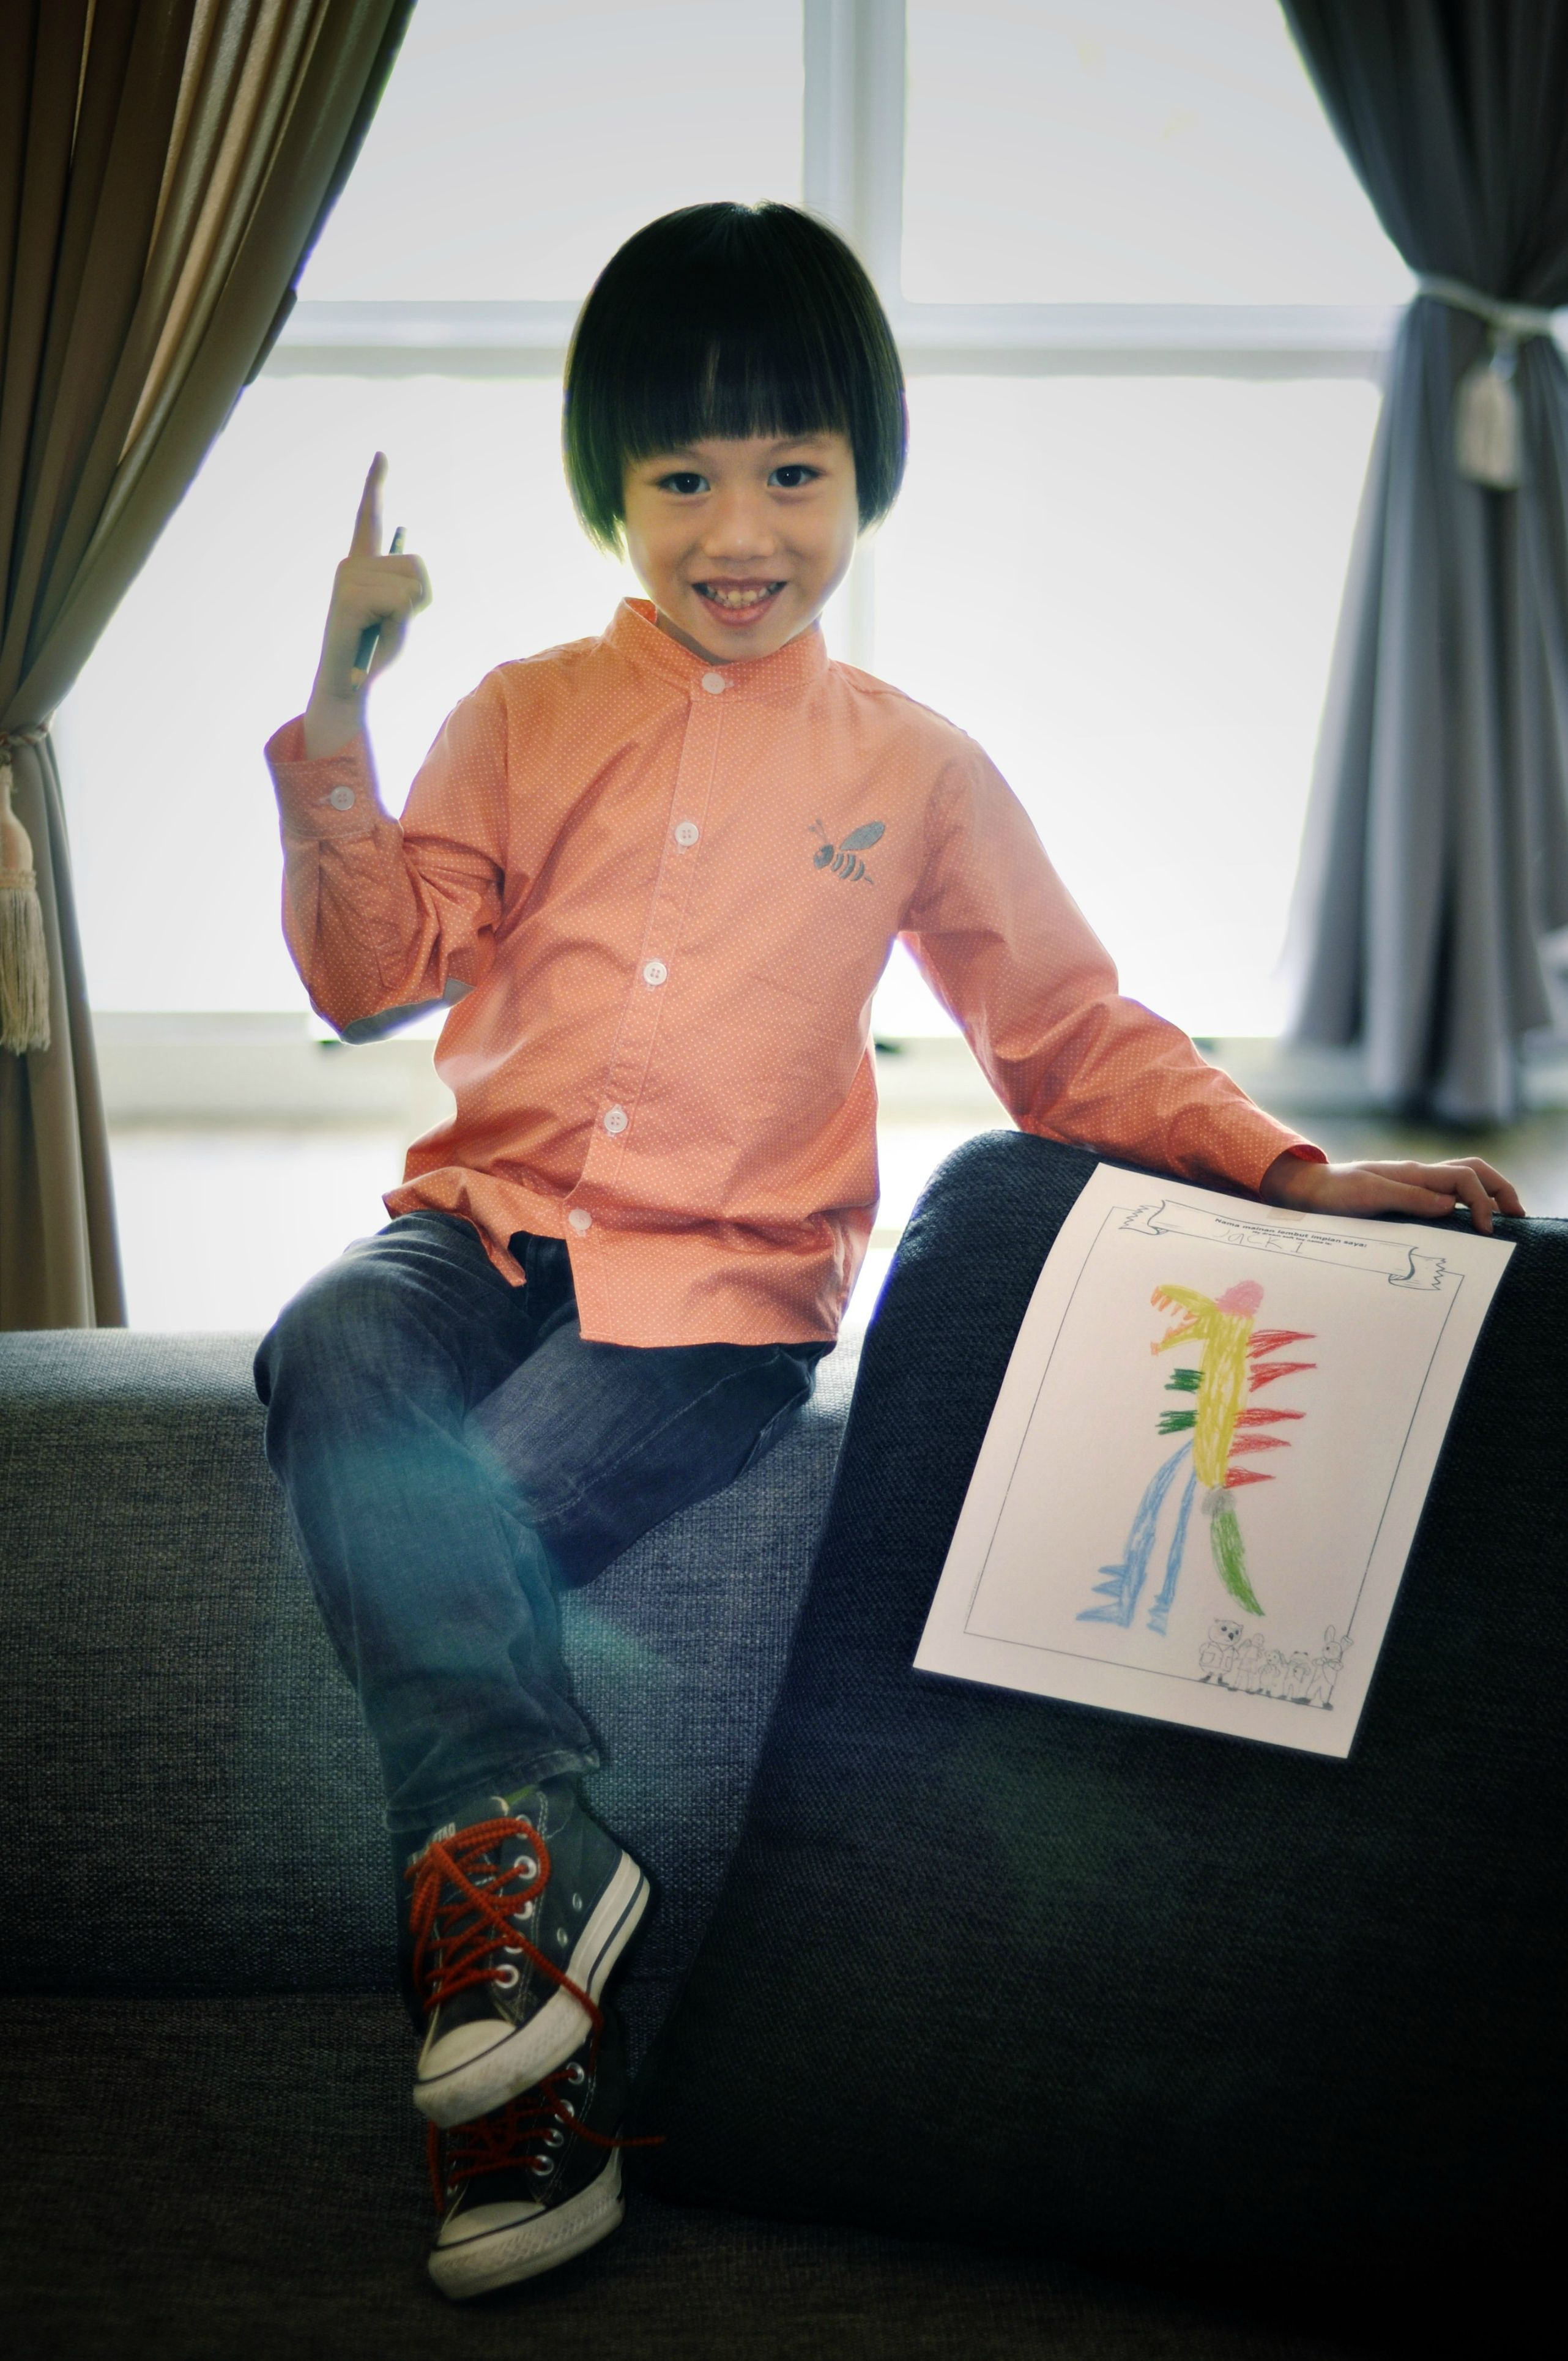 Terence with his drawing.